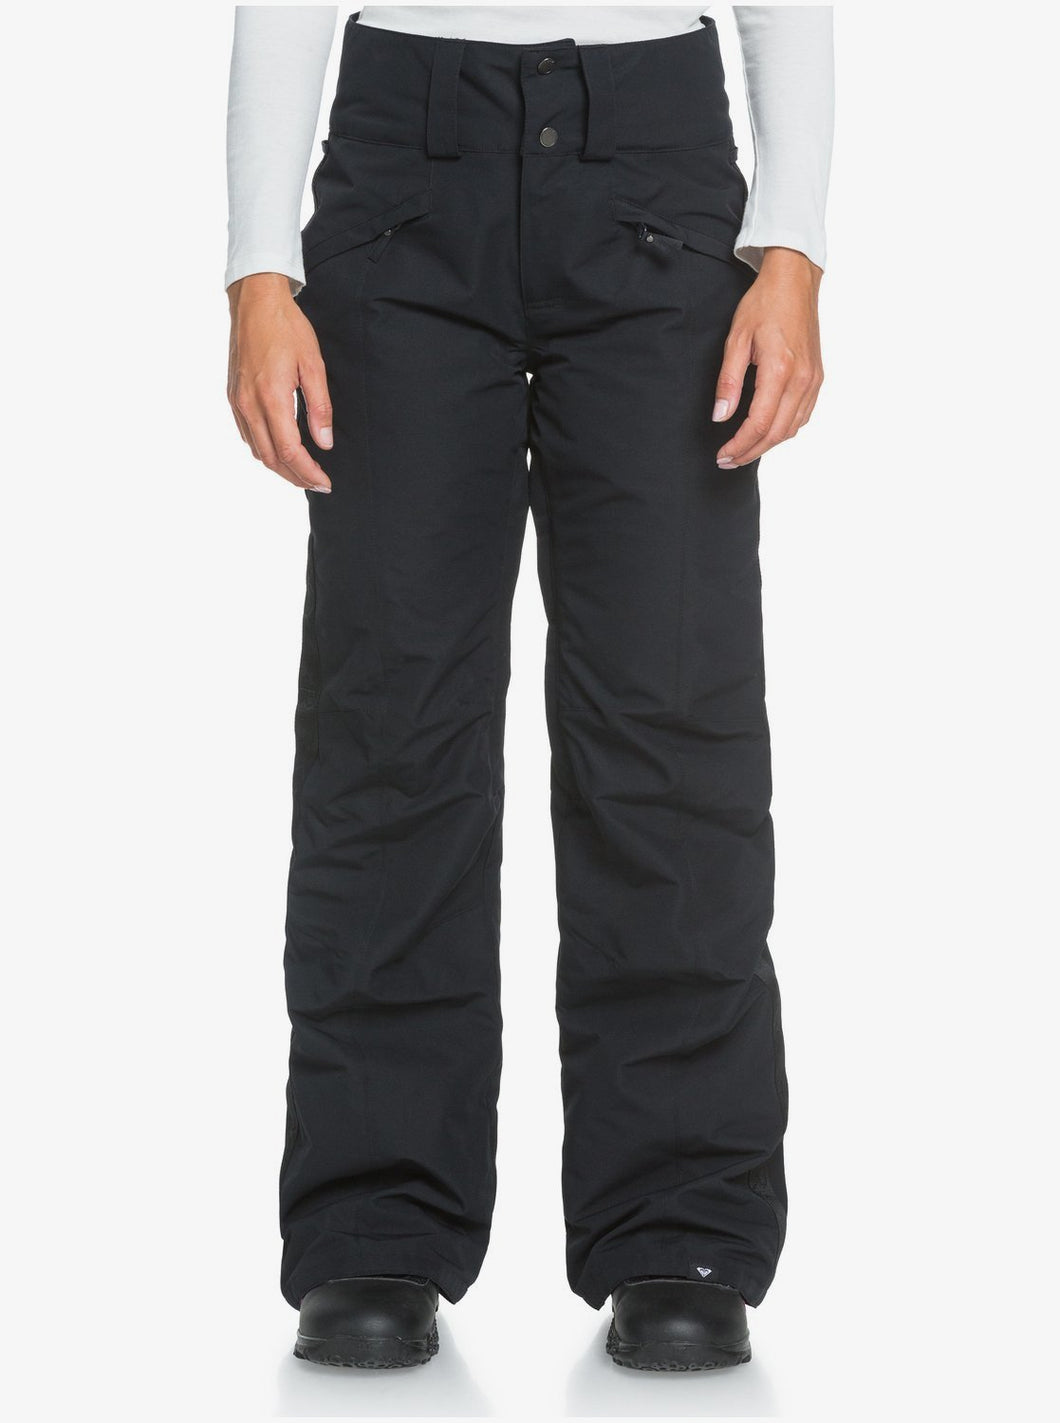 Roxy Women's Spiral Snow Pant True Black Front View